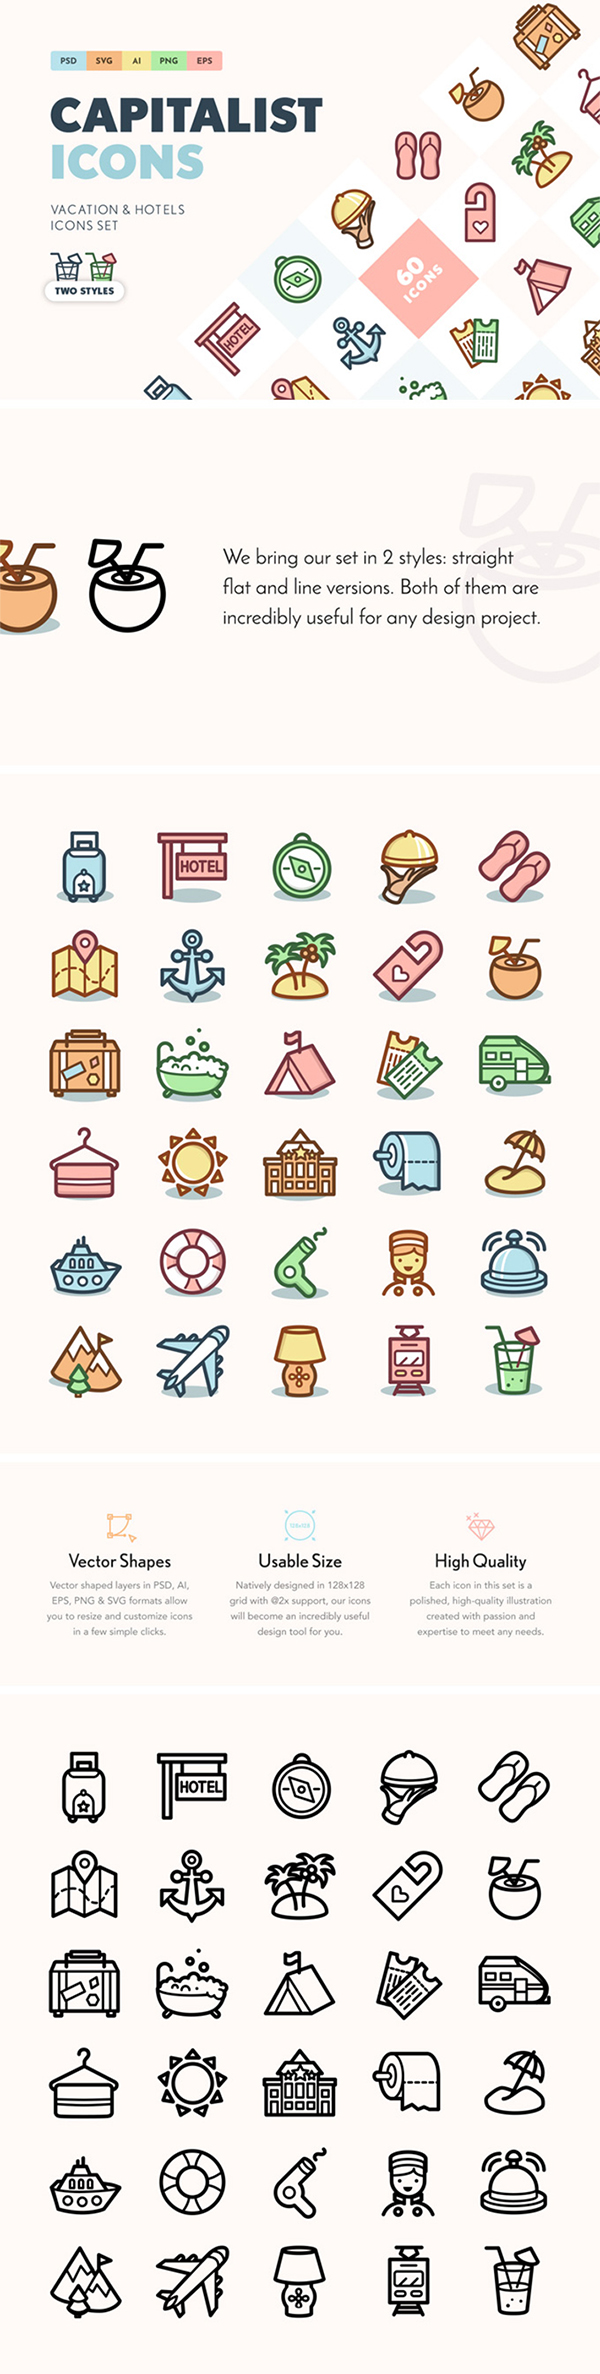 Free Download 60 Creative Flat Vector Vacation & Hotels Icons Set